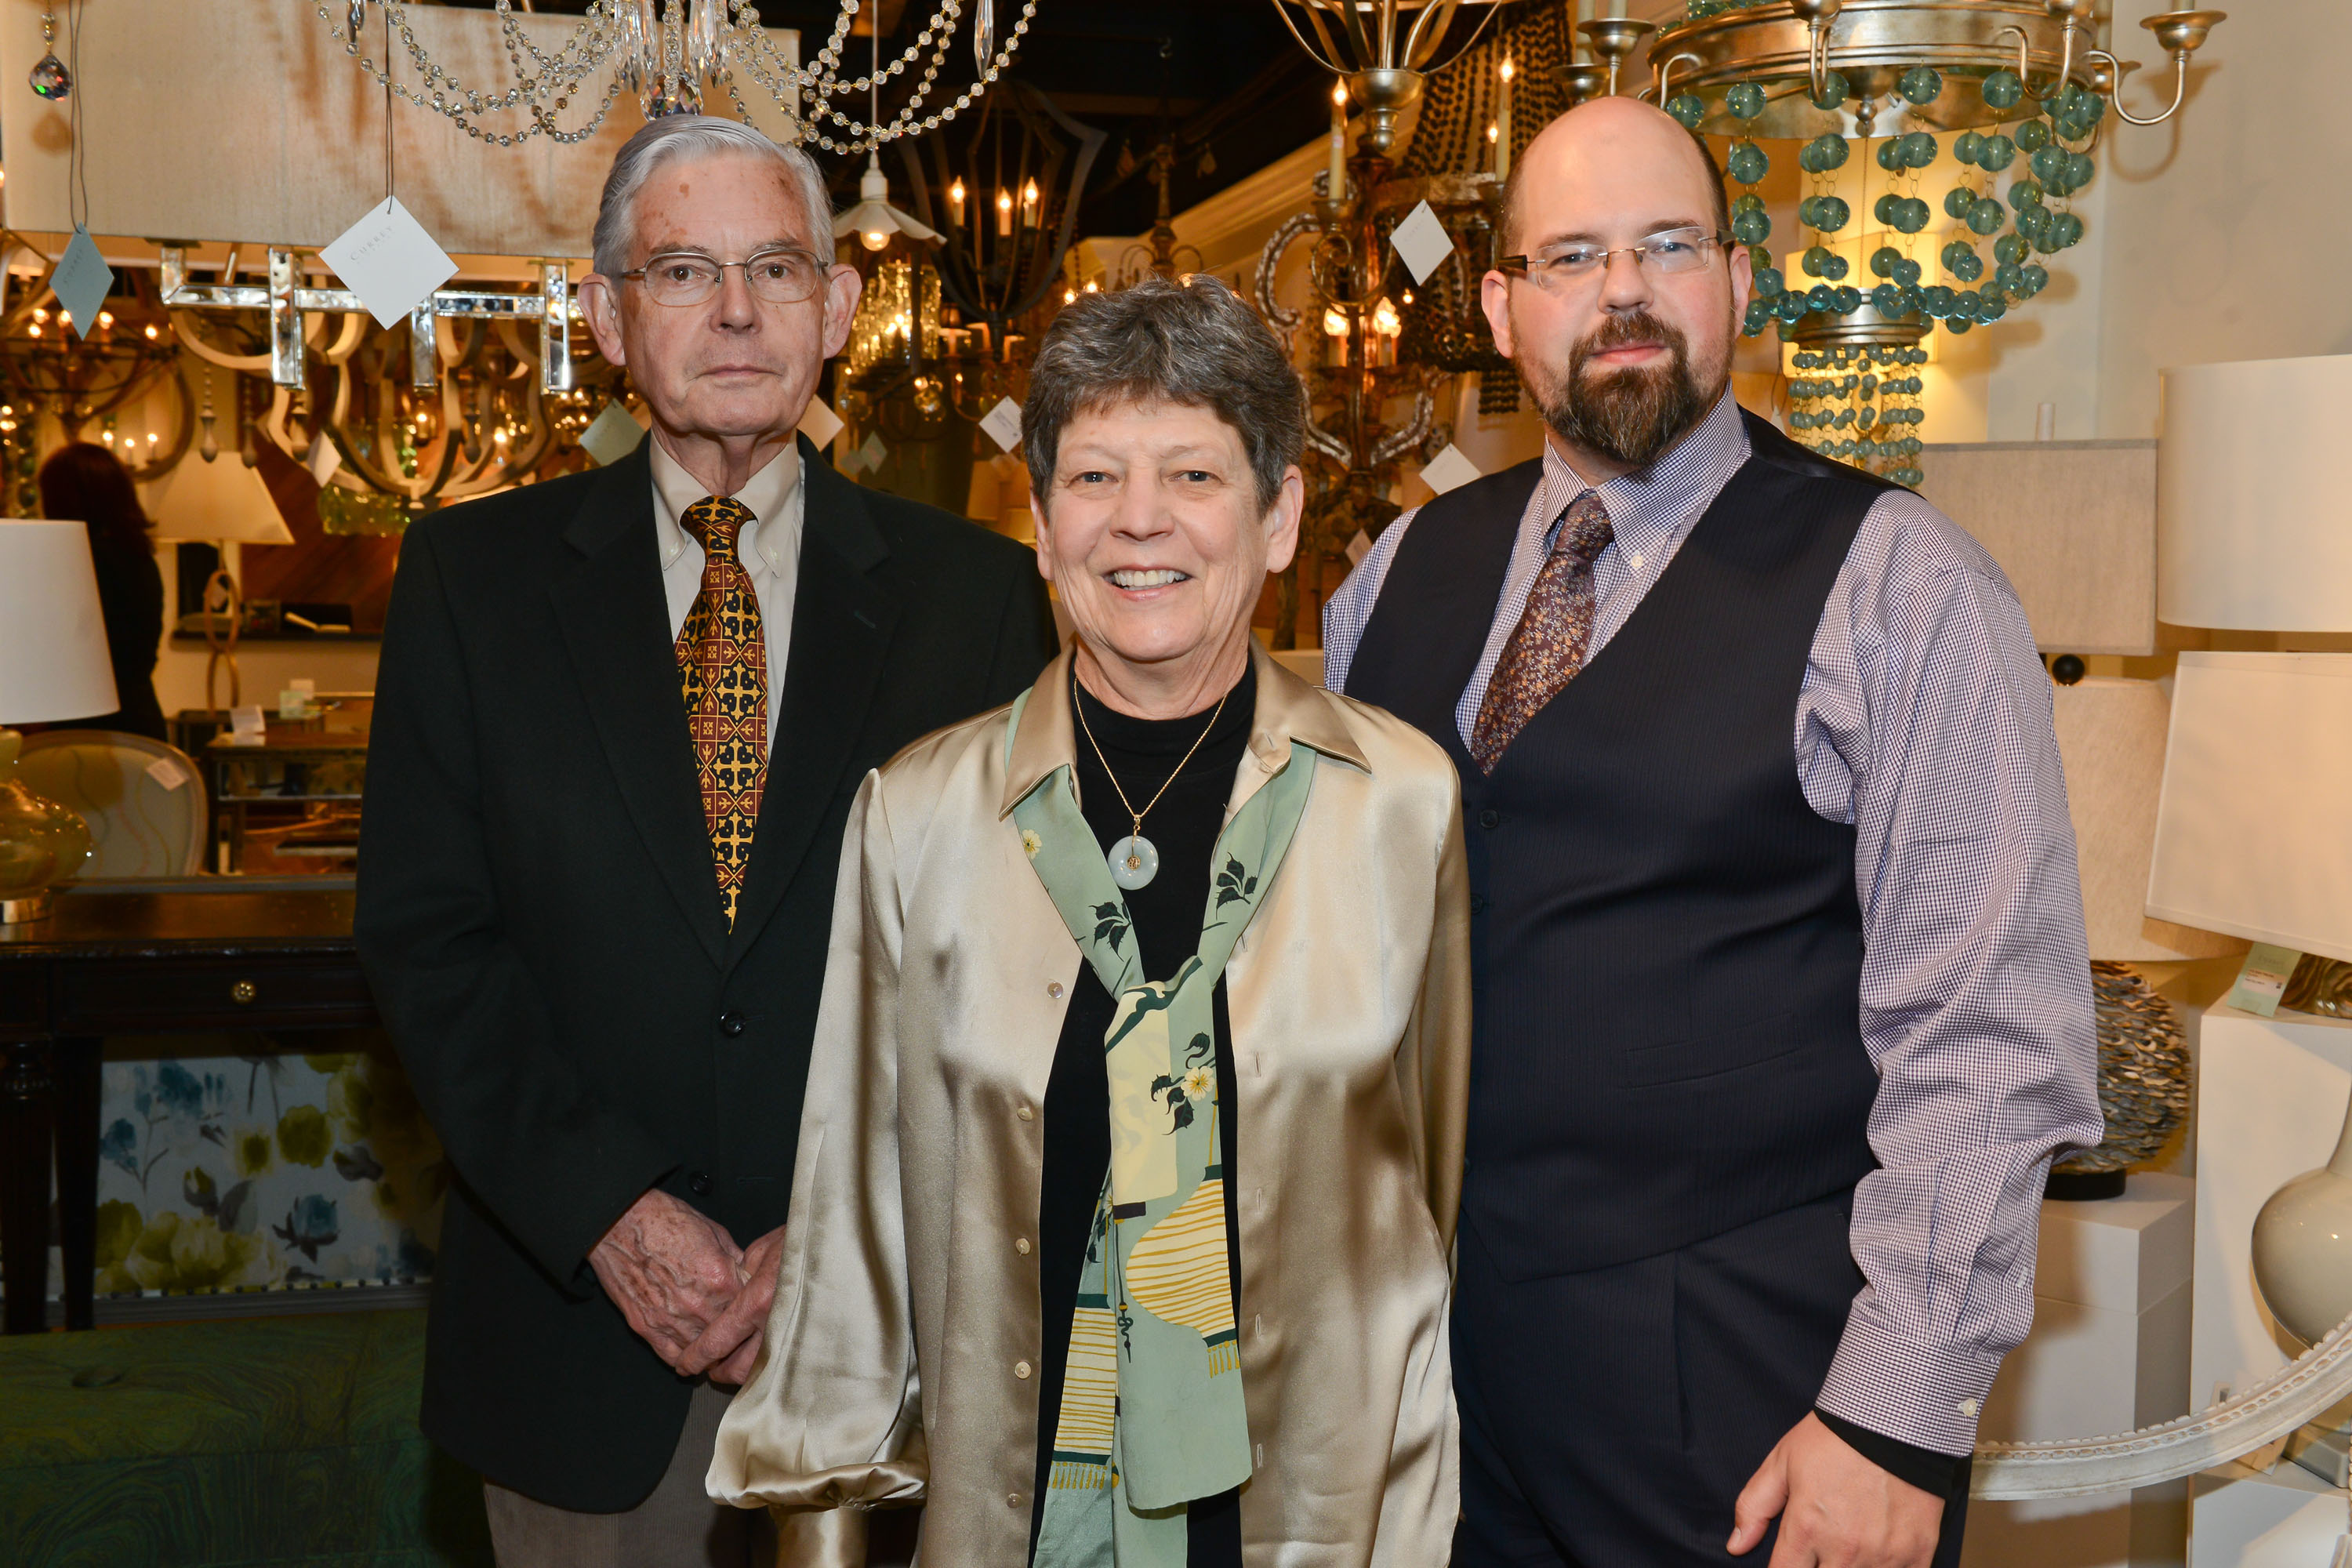 Robert, Suzy and Brownlee Currey at the NYDC